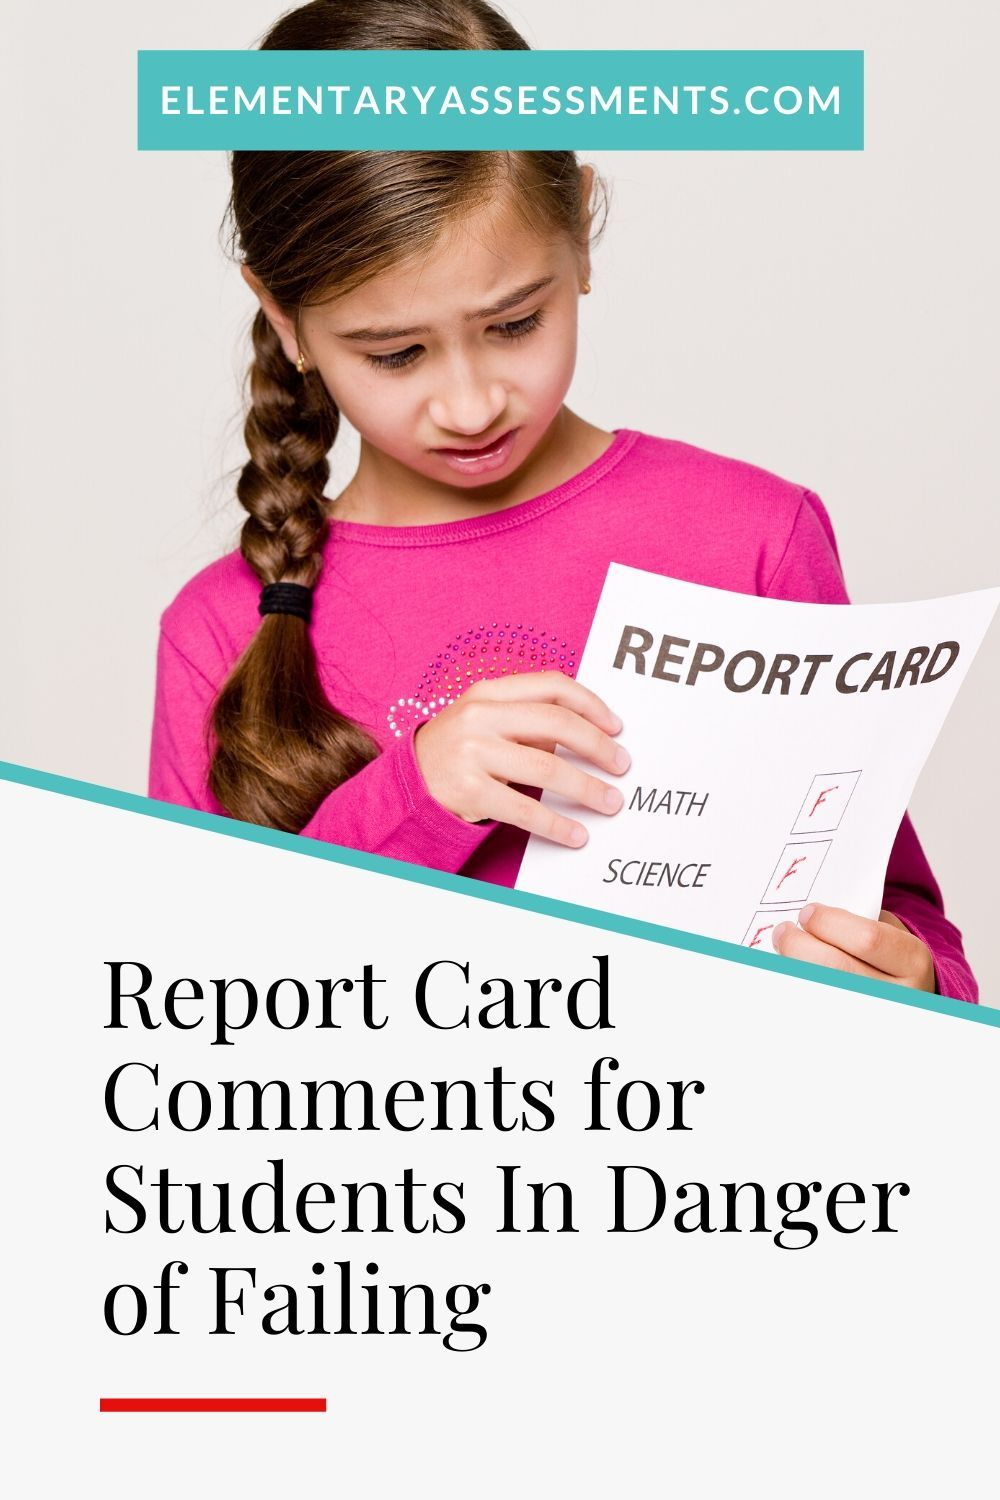 Report card comments for students in danger of failing in